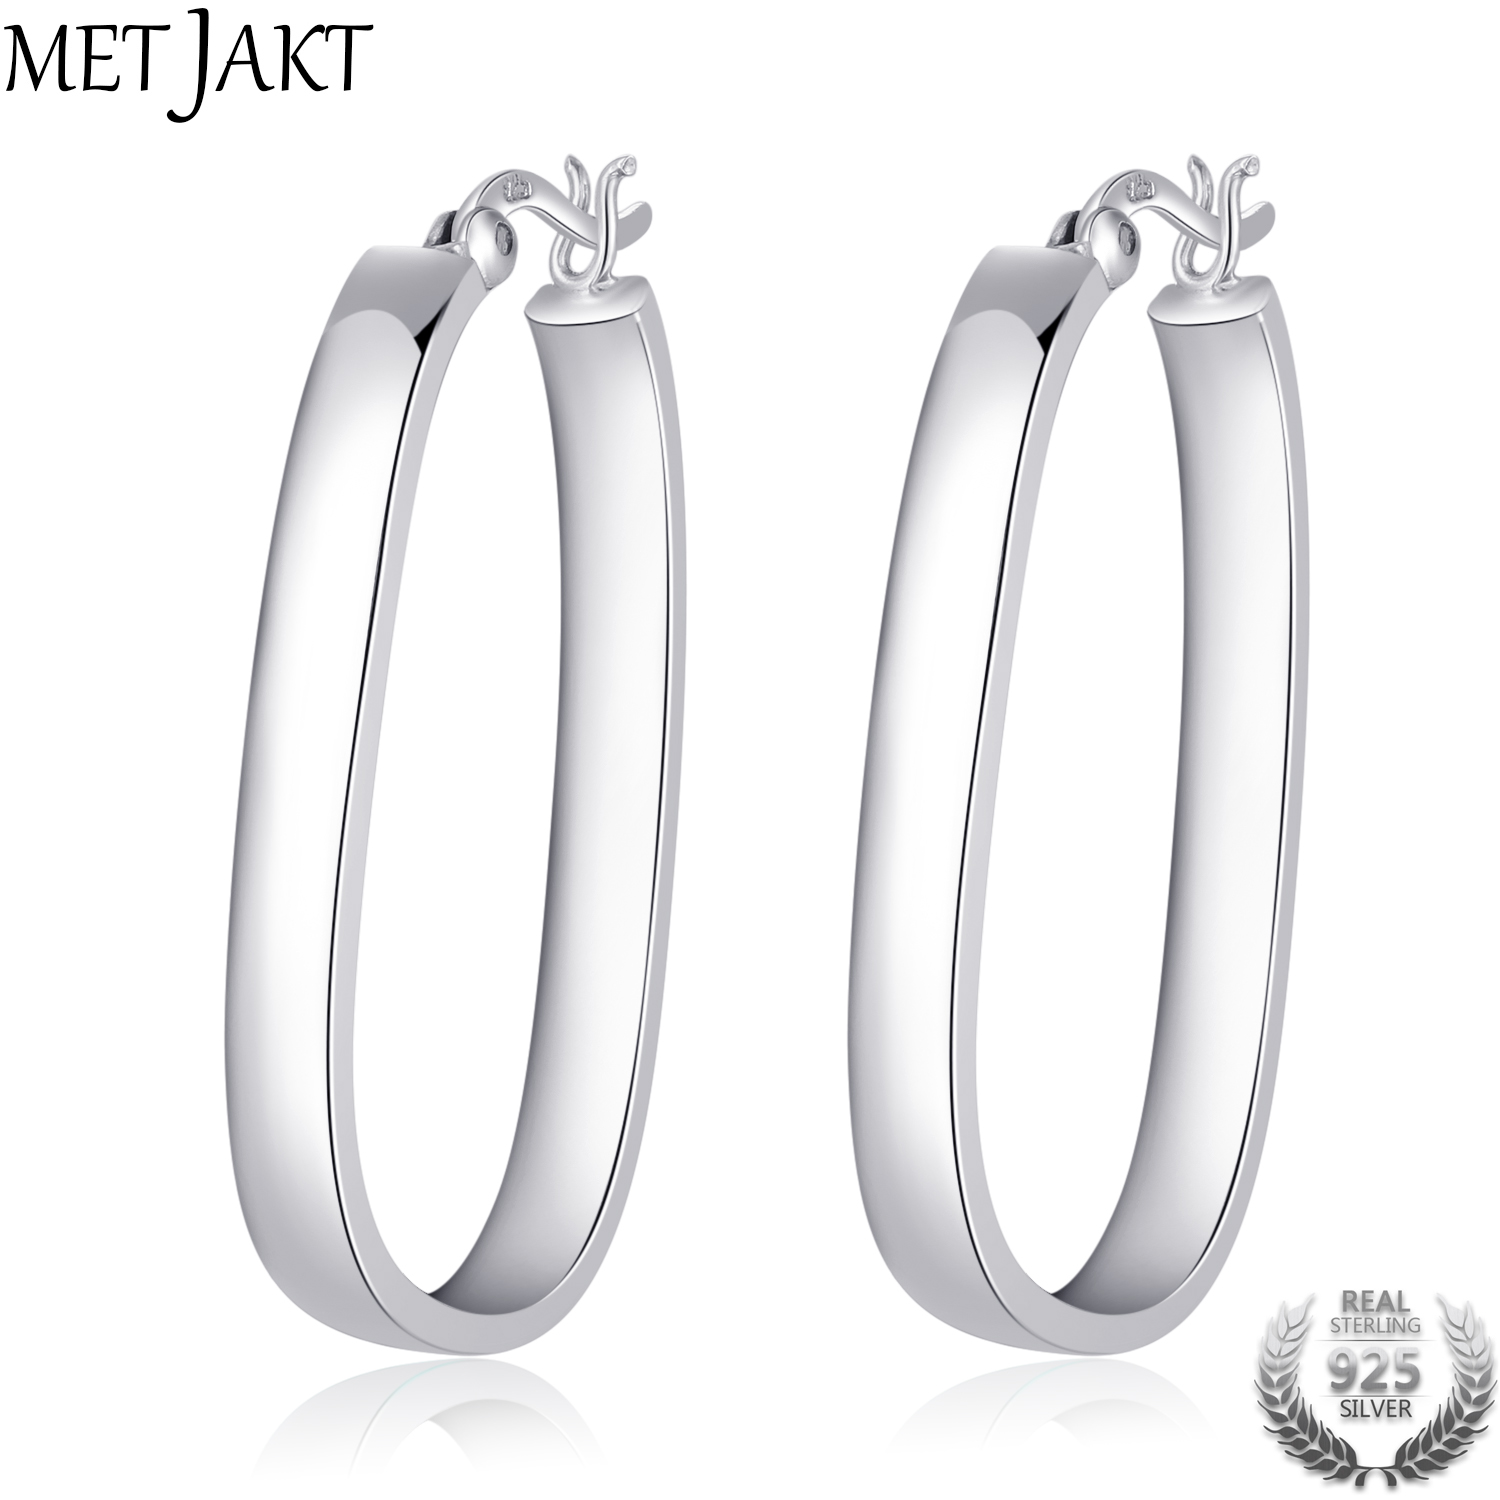 цена на MetJakt Classic 925 Sterling Silver Square Vintage Hoop Earrings for Women Best Gift Fashion Jewelry